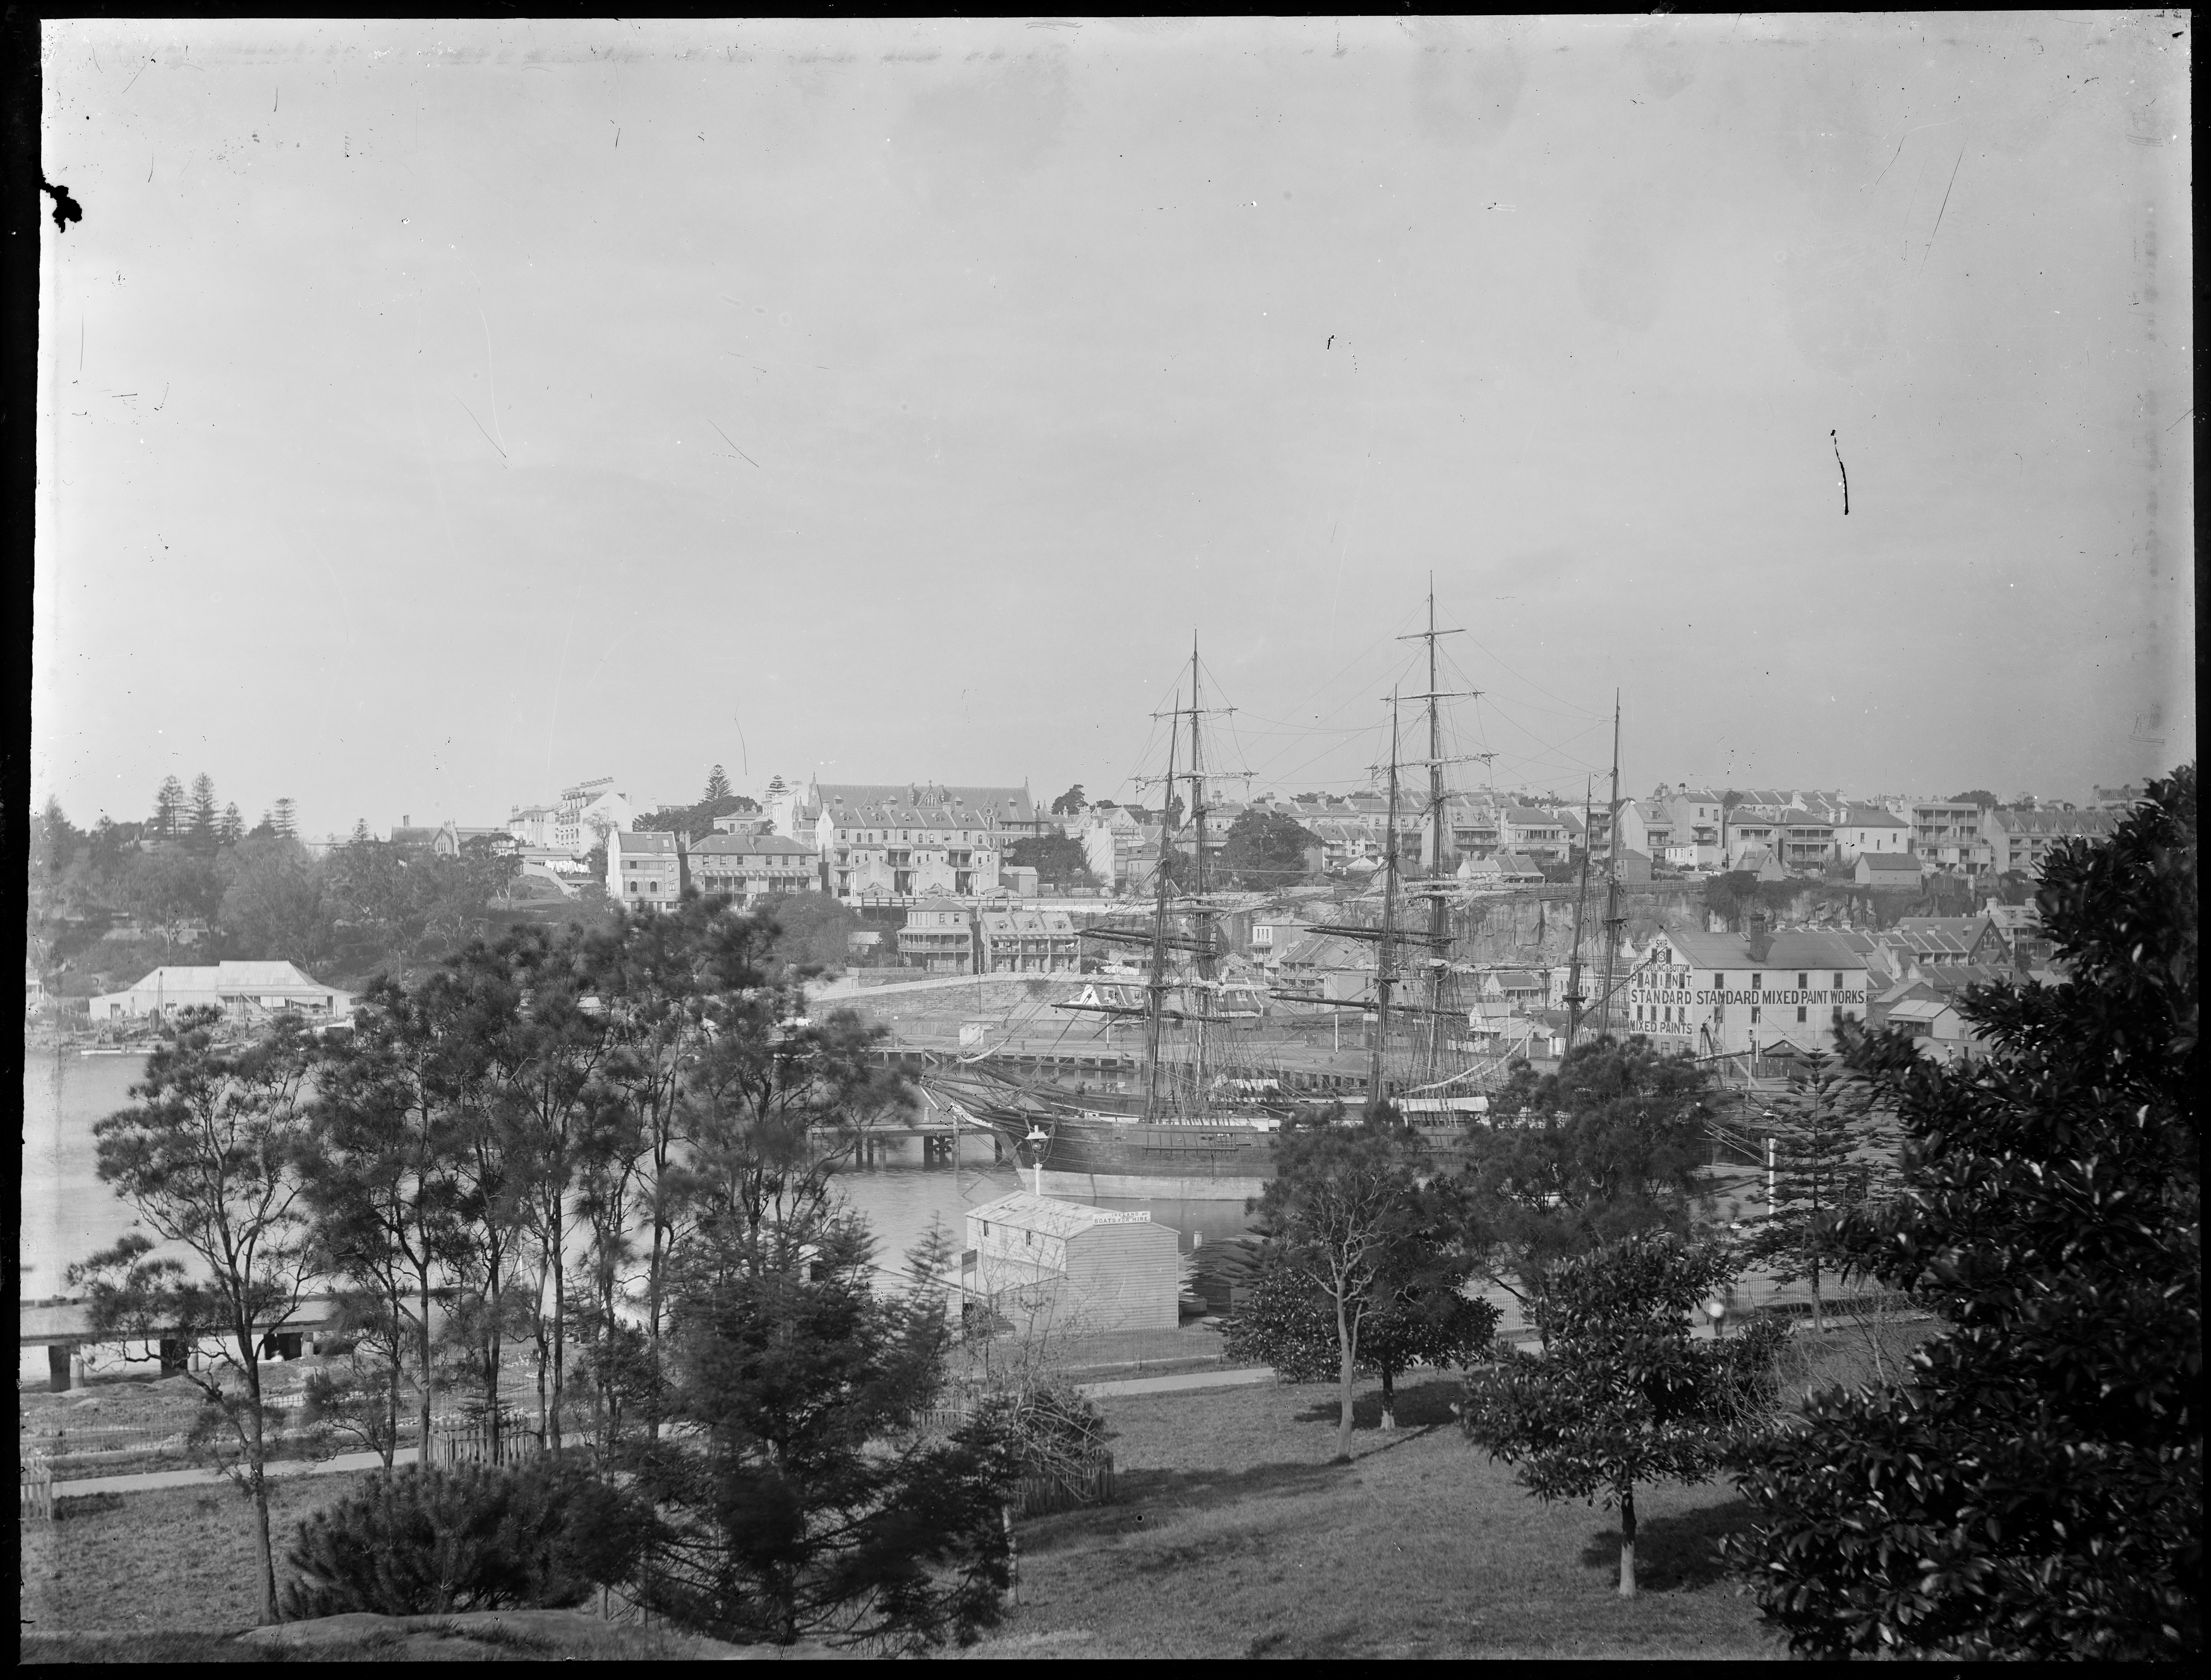 Box 02: Glass negatives including images of boating, beaches, motoring and houses in the Sydney region, ca 1890-1910